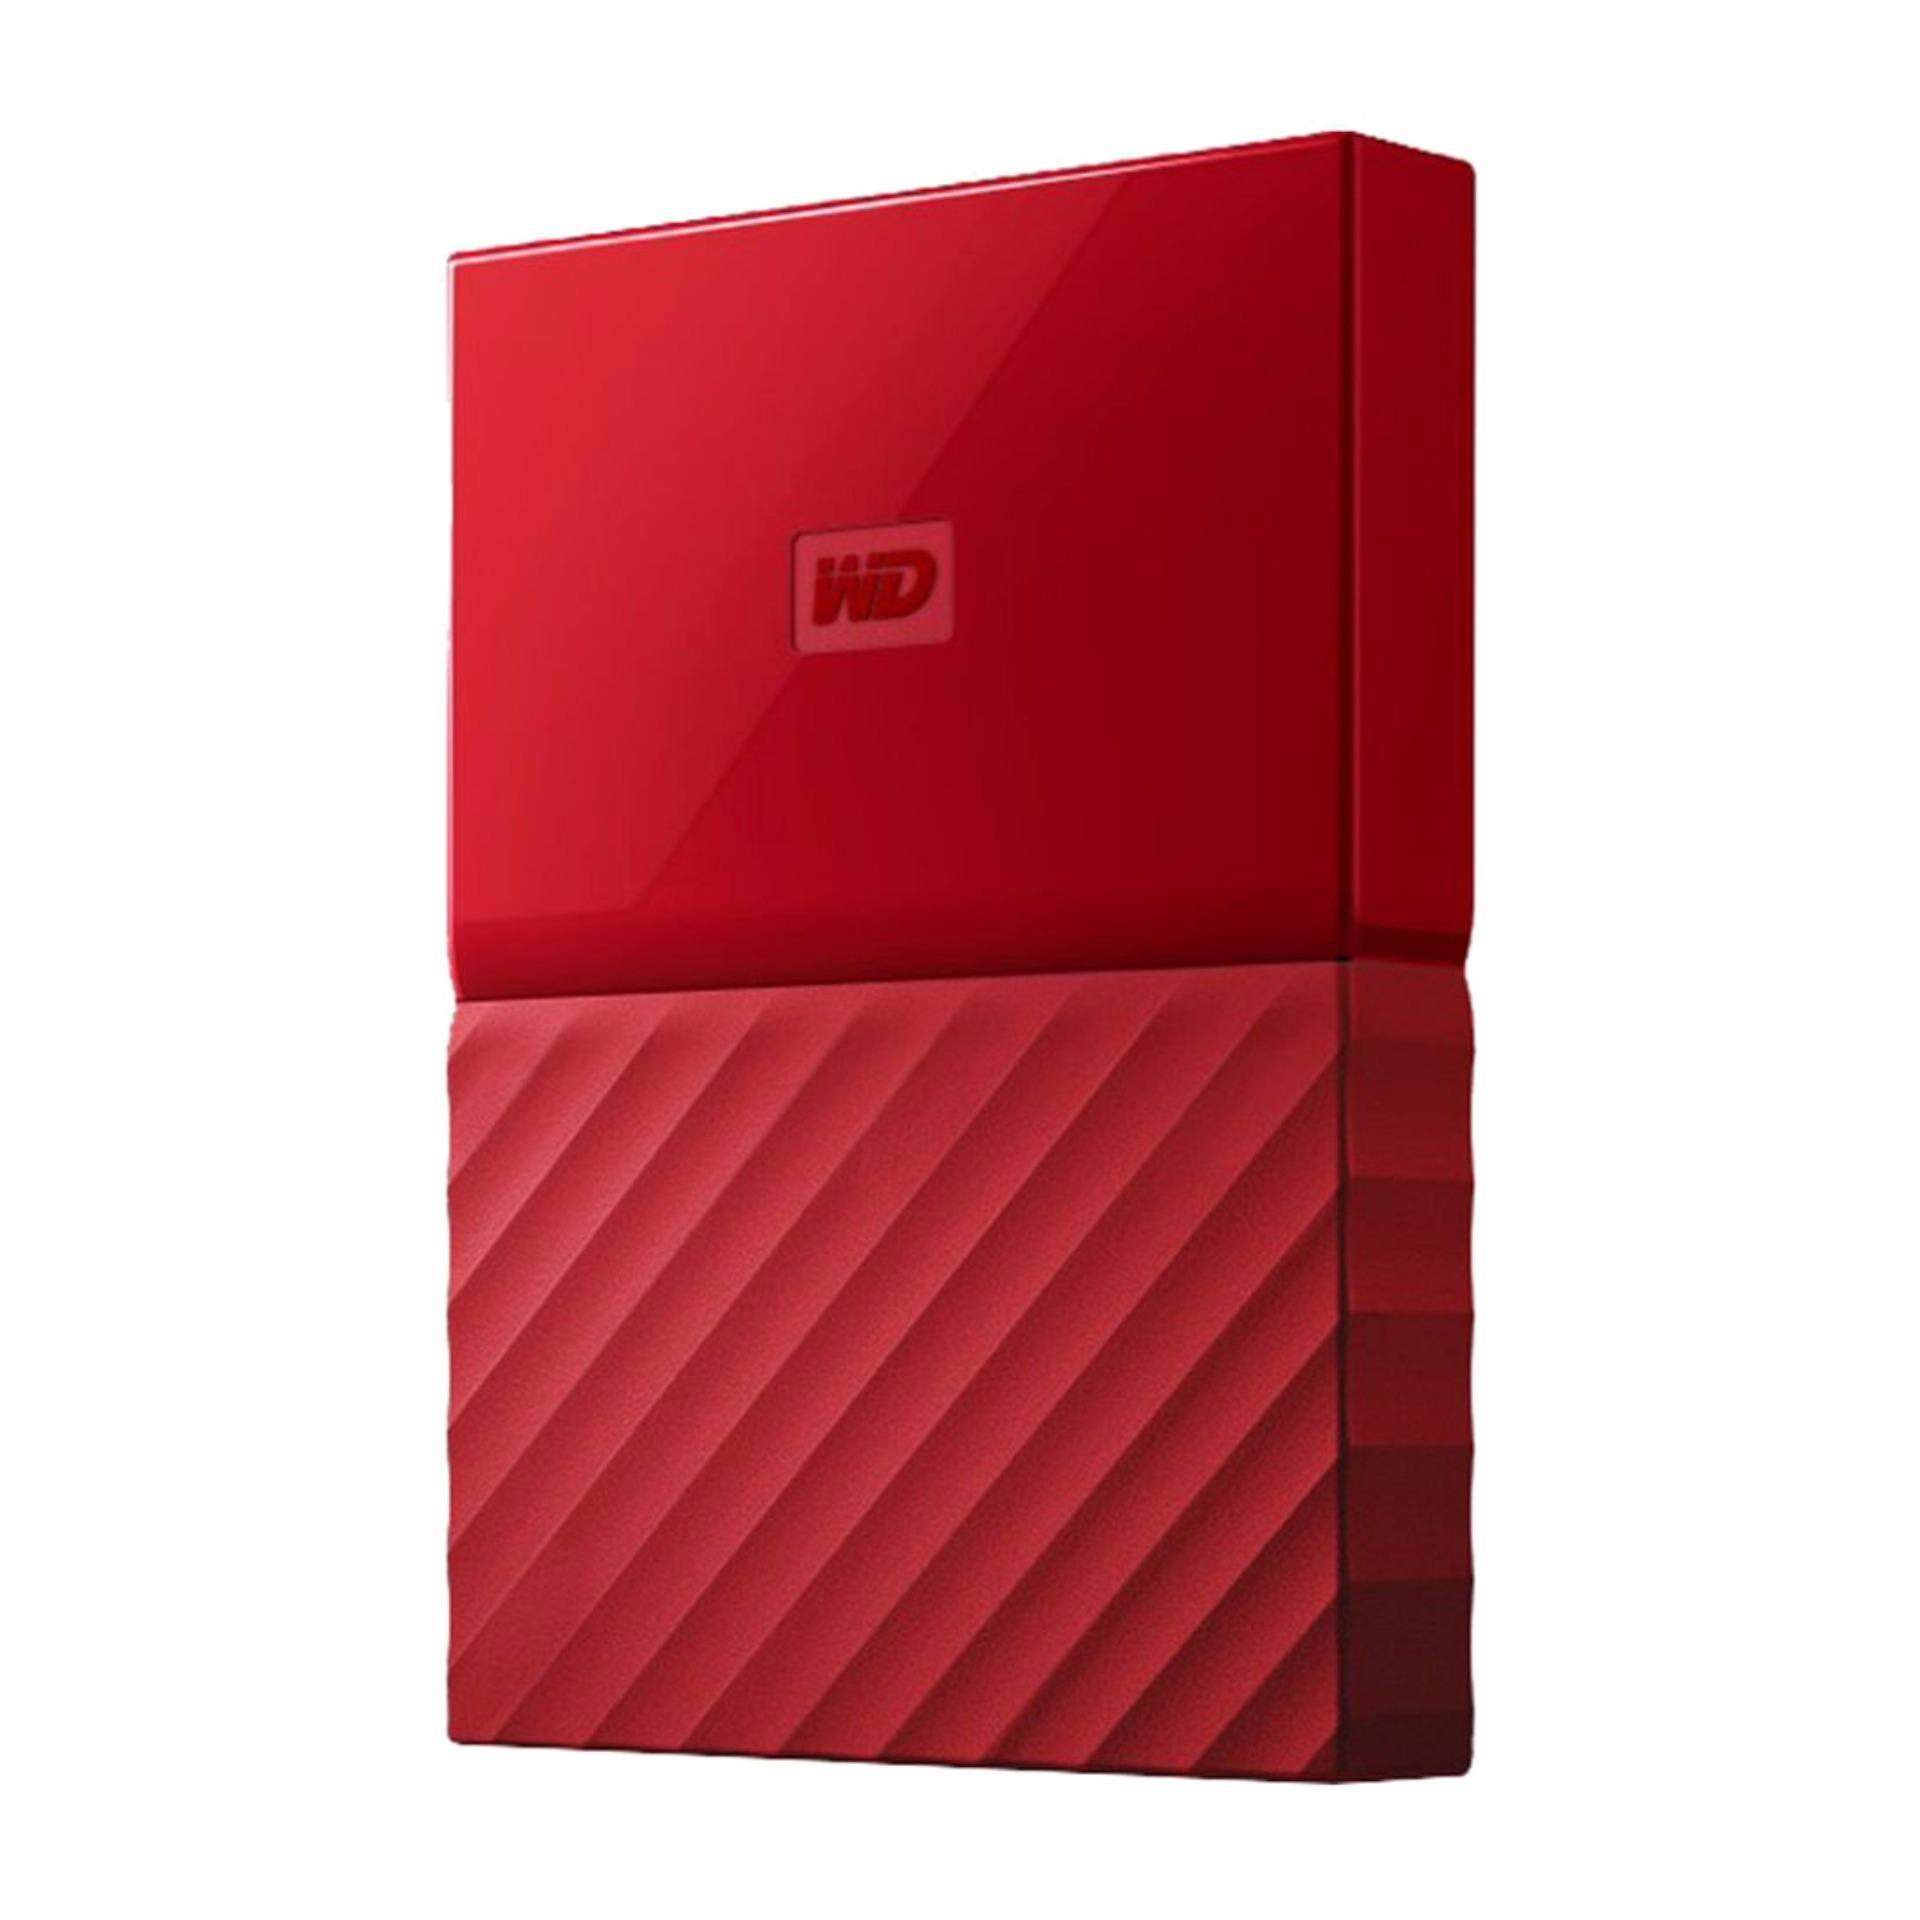 WD My Passport 2TB (Red) USB 3.0 Portable External Hard Drive with FREE WD